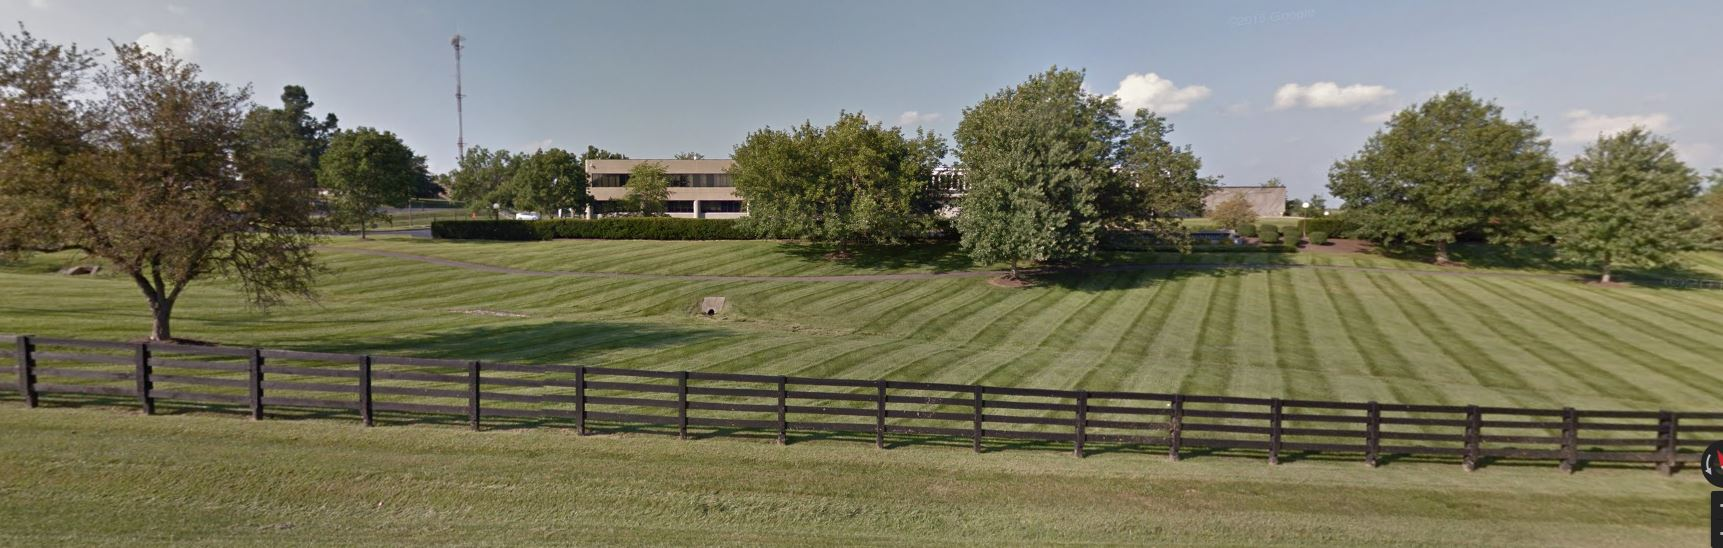 The more public-facing portion of EKPC gets the finish-mow treatment on a weekly basis.